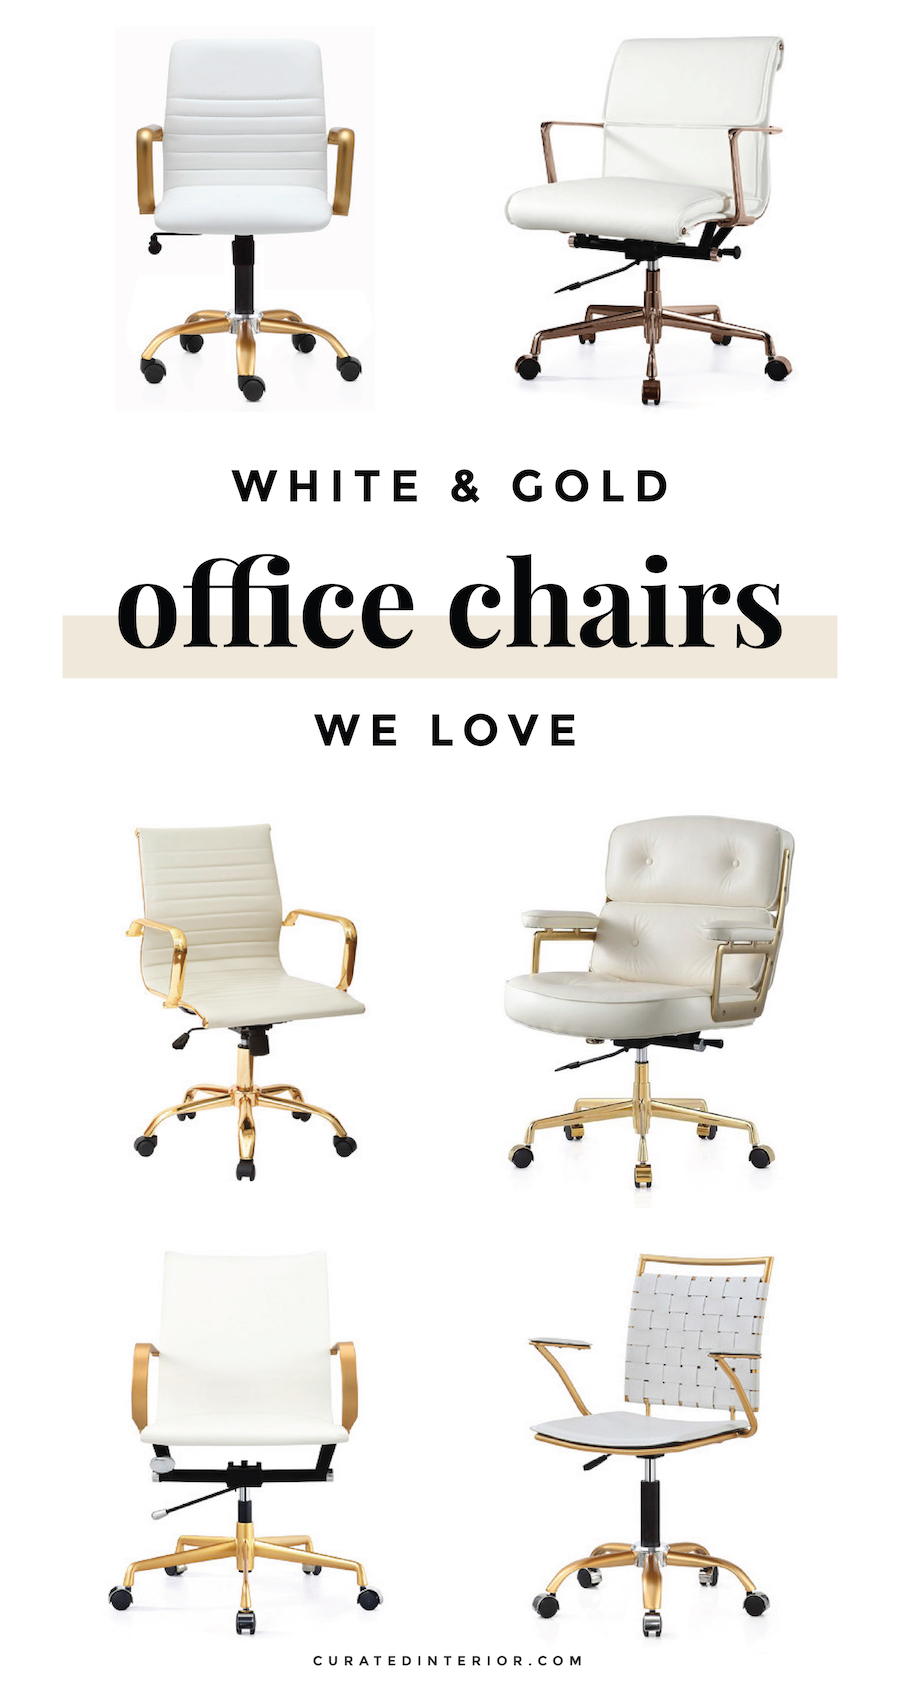 White & Gold Office Chairs for your Home Office Desk